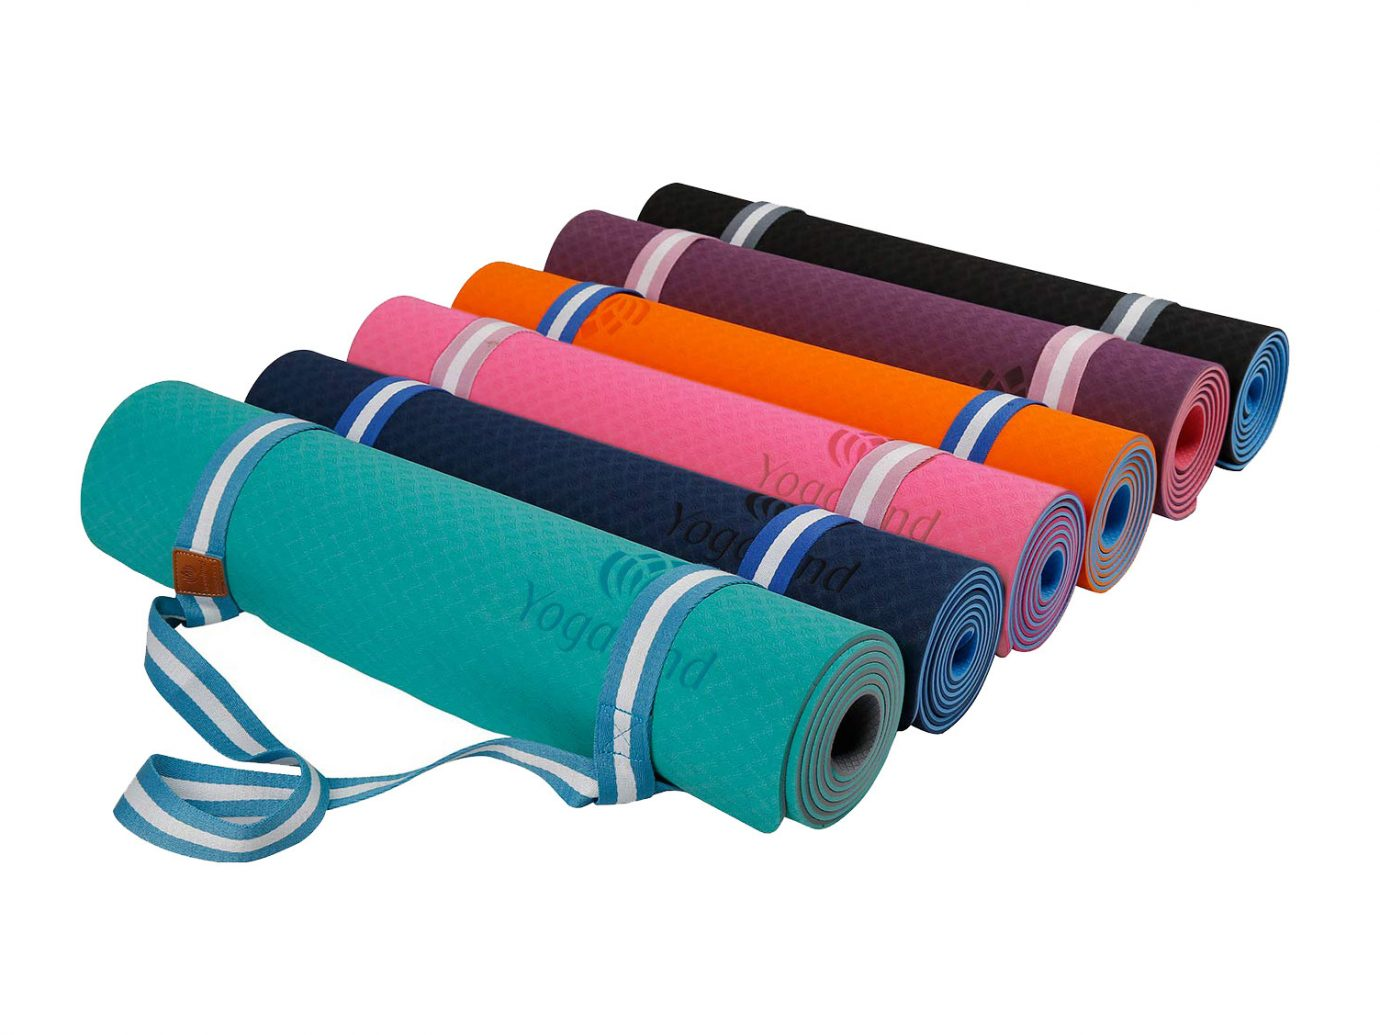 Buy YOGALAND Premium Yoga Mat with Carrier Strap on Amazon